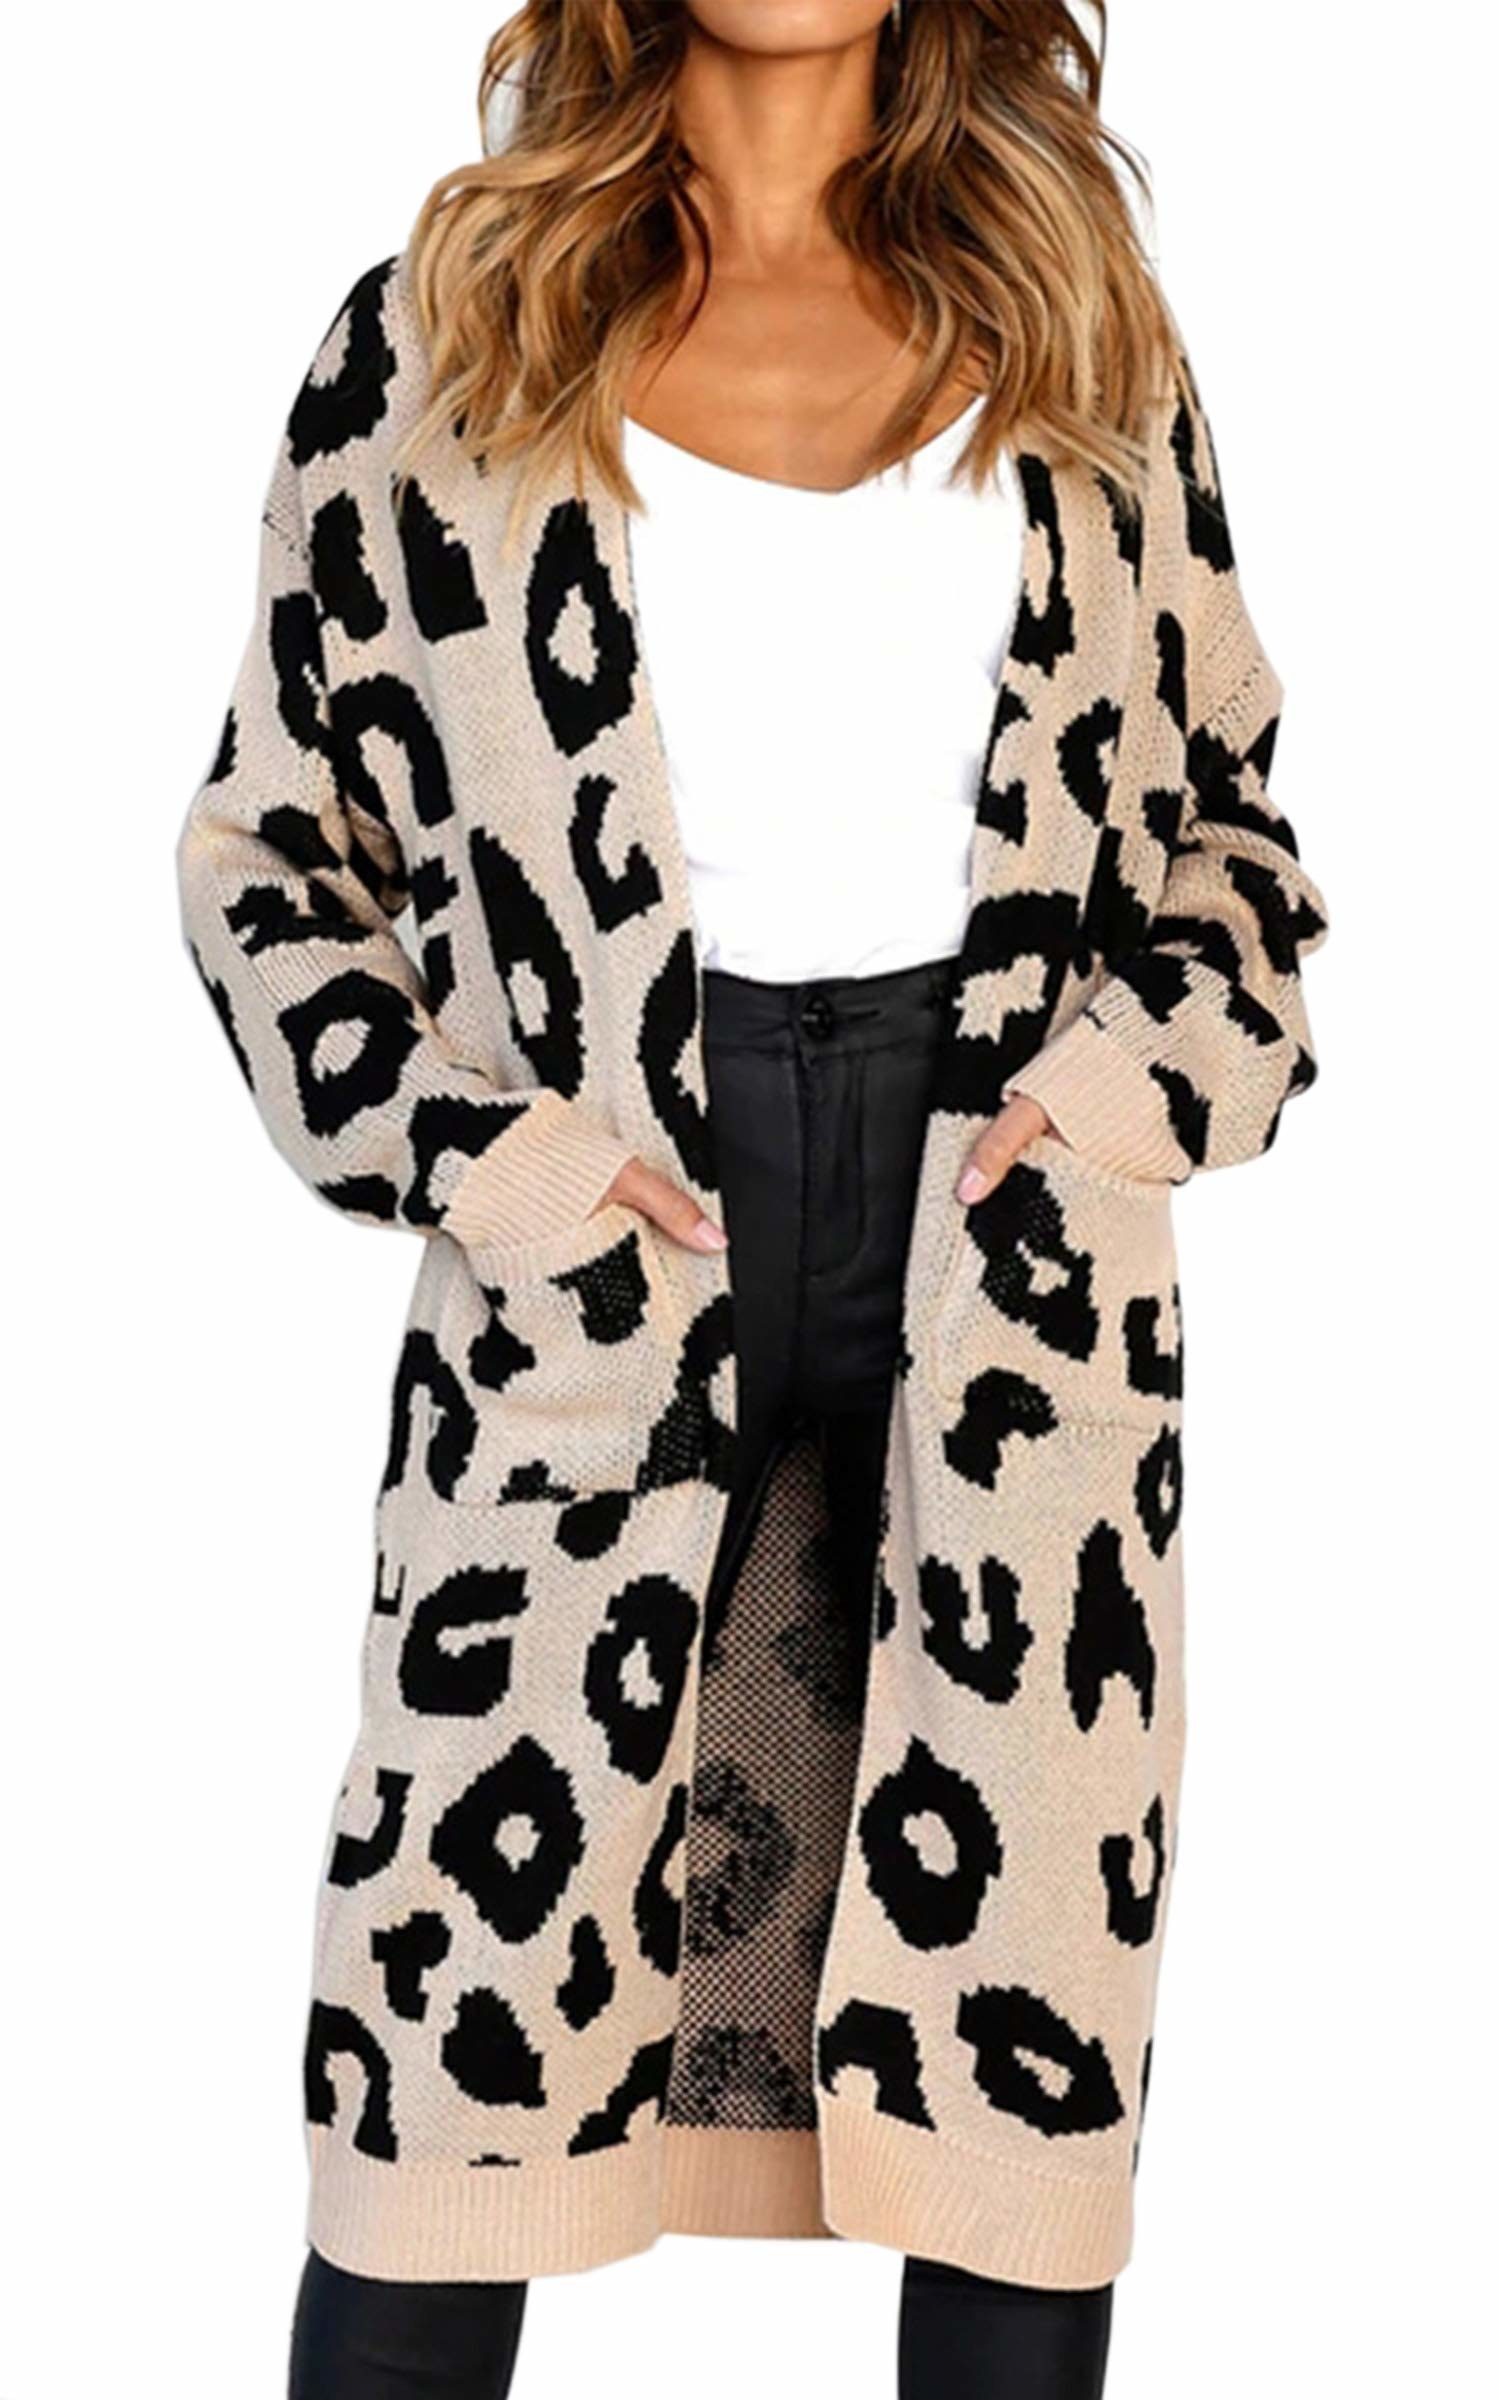 d79f4ff9693b 4. A leopard-print knit for days you just feel like soaking up a million  and one compliments about your awesome fashion sense.